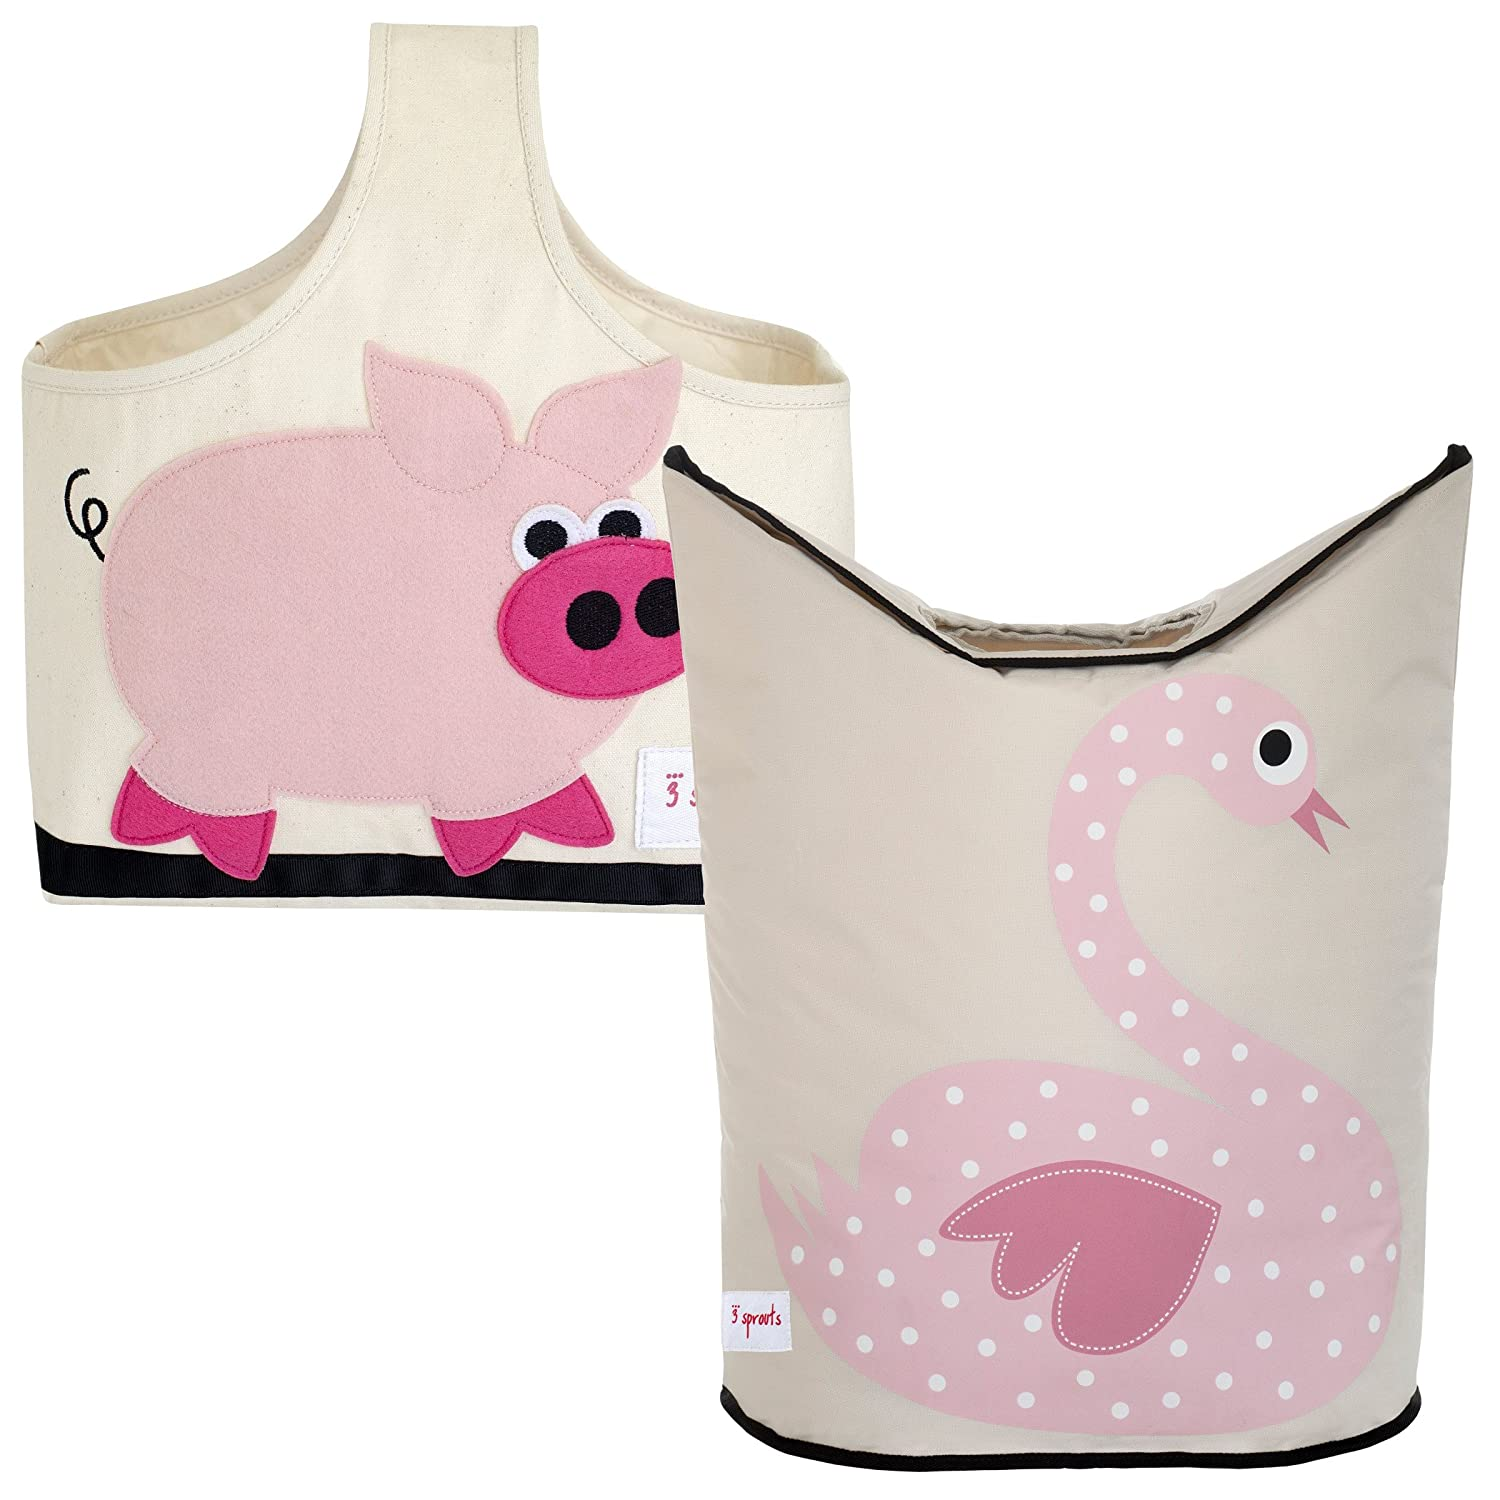 3 Sprouts Storage Caddy and Laundry Hamper, Pig/Swan